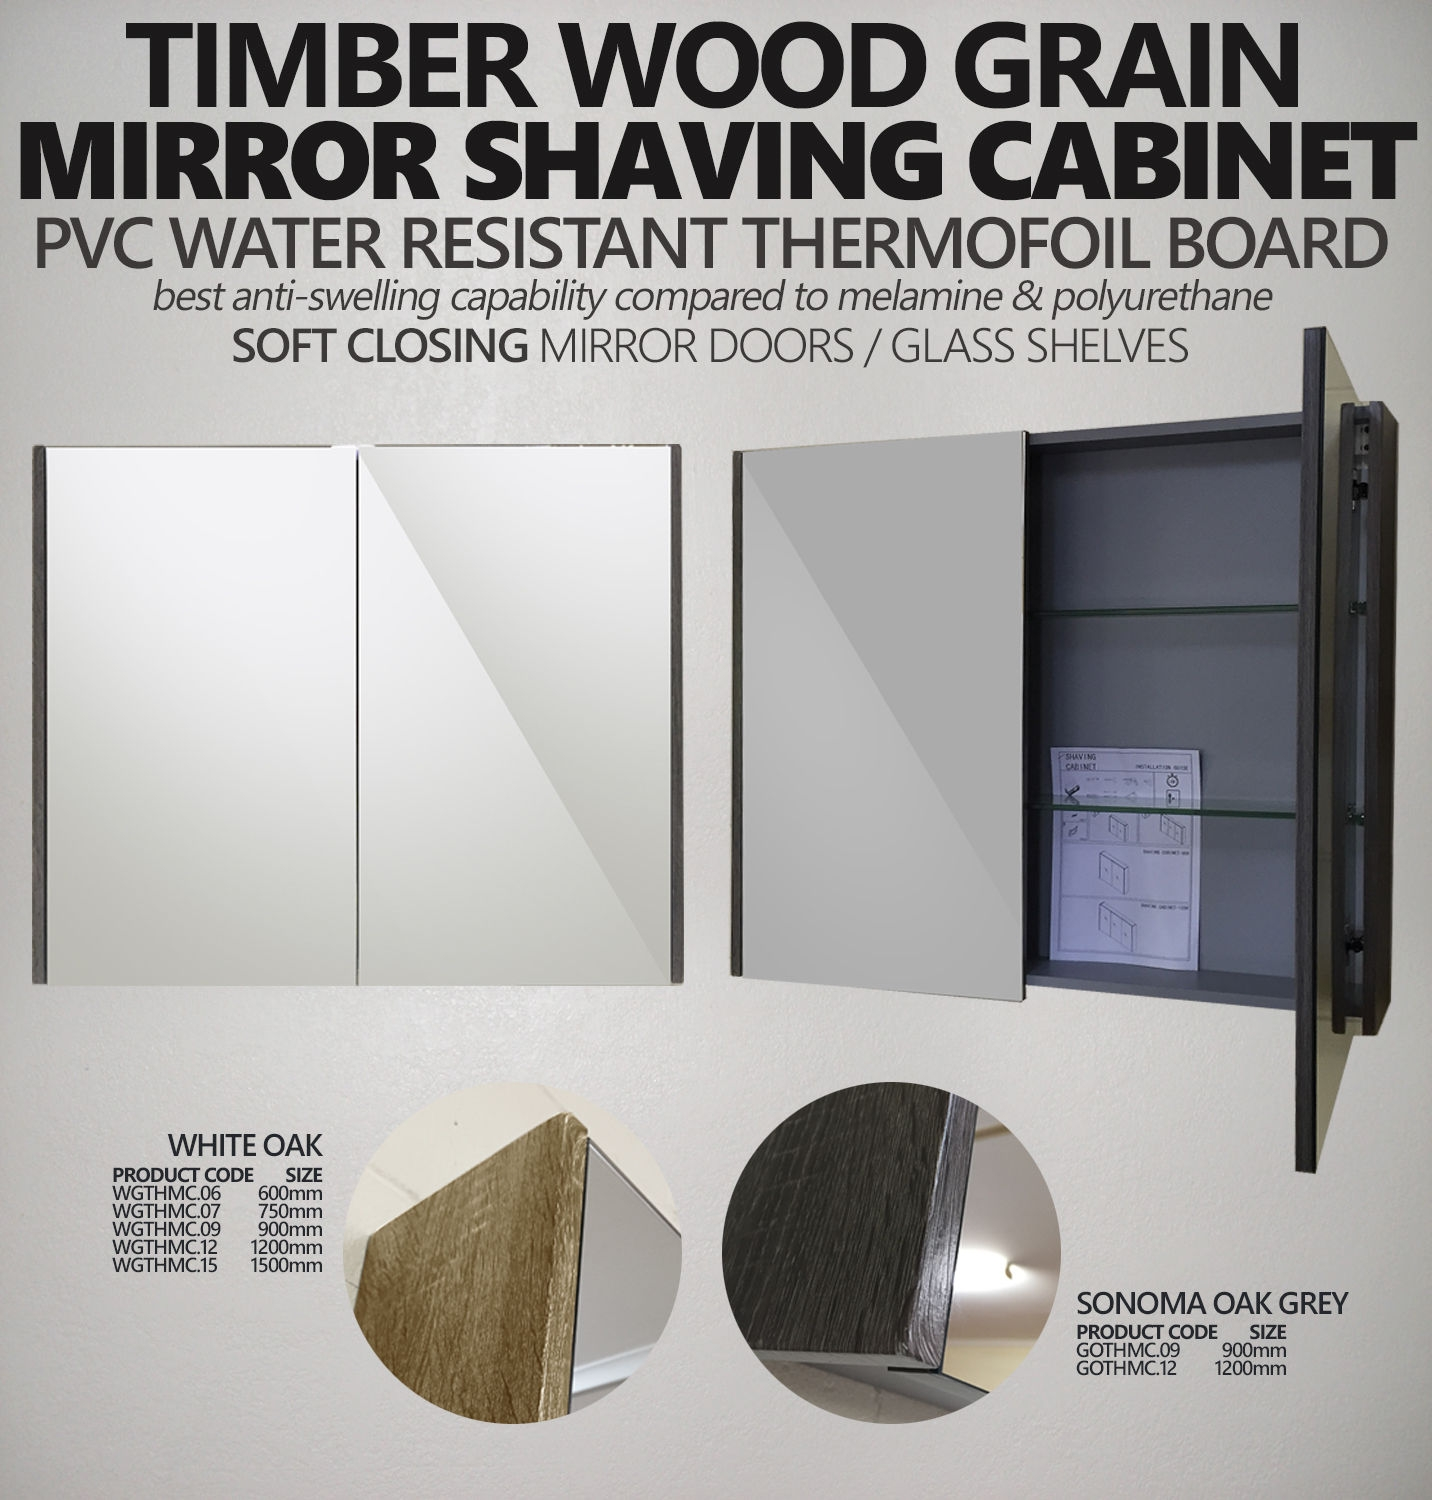 Shower Shaving Mirror Australia Shave Pvc Thermal Foil Mirror Shaving Cabinet With